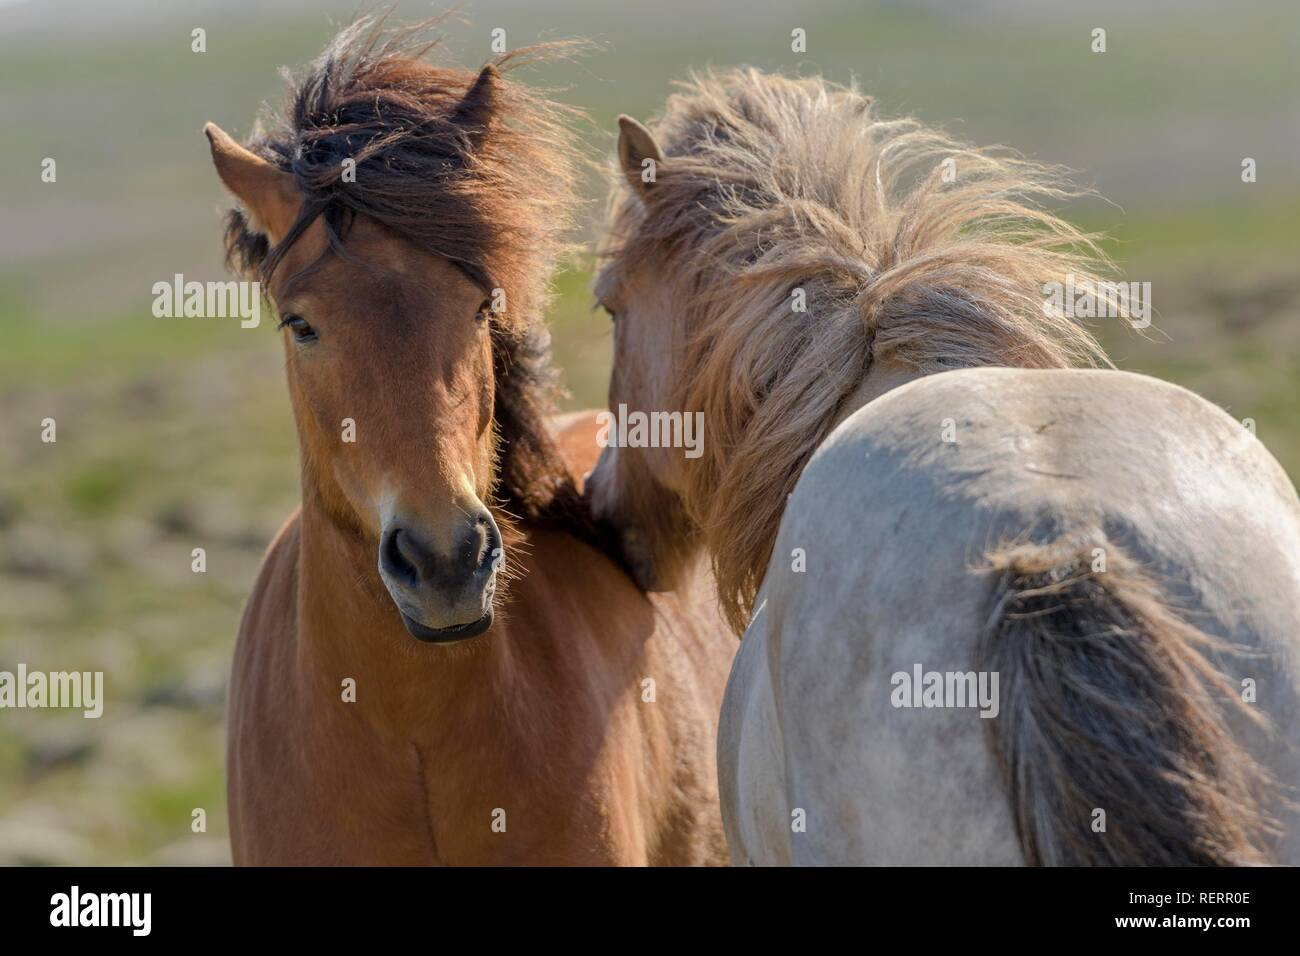 Two Icelandic horses, brown and white, grooming their fur on pasture, wind blowing in mane, Sauðárkrókur, Akrahreppur - Stock Image